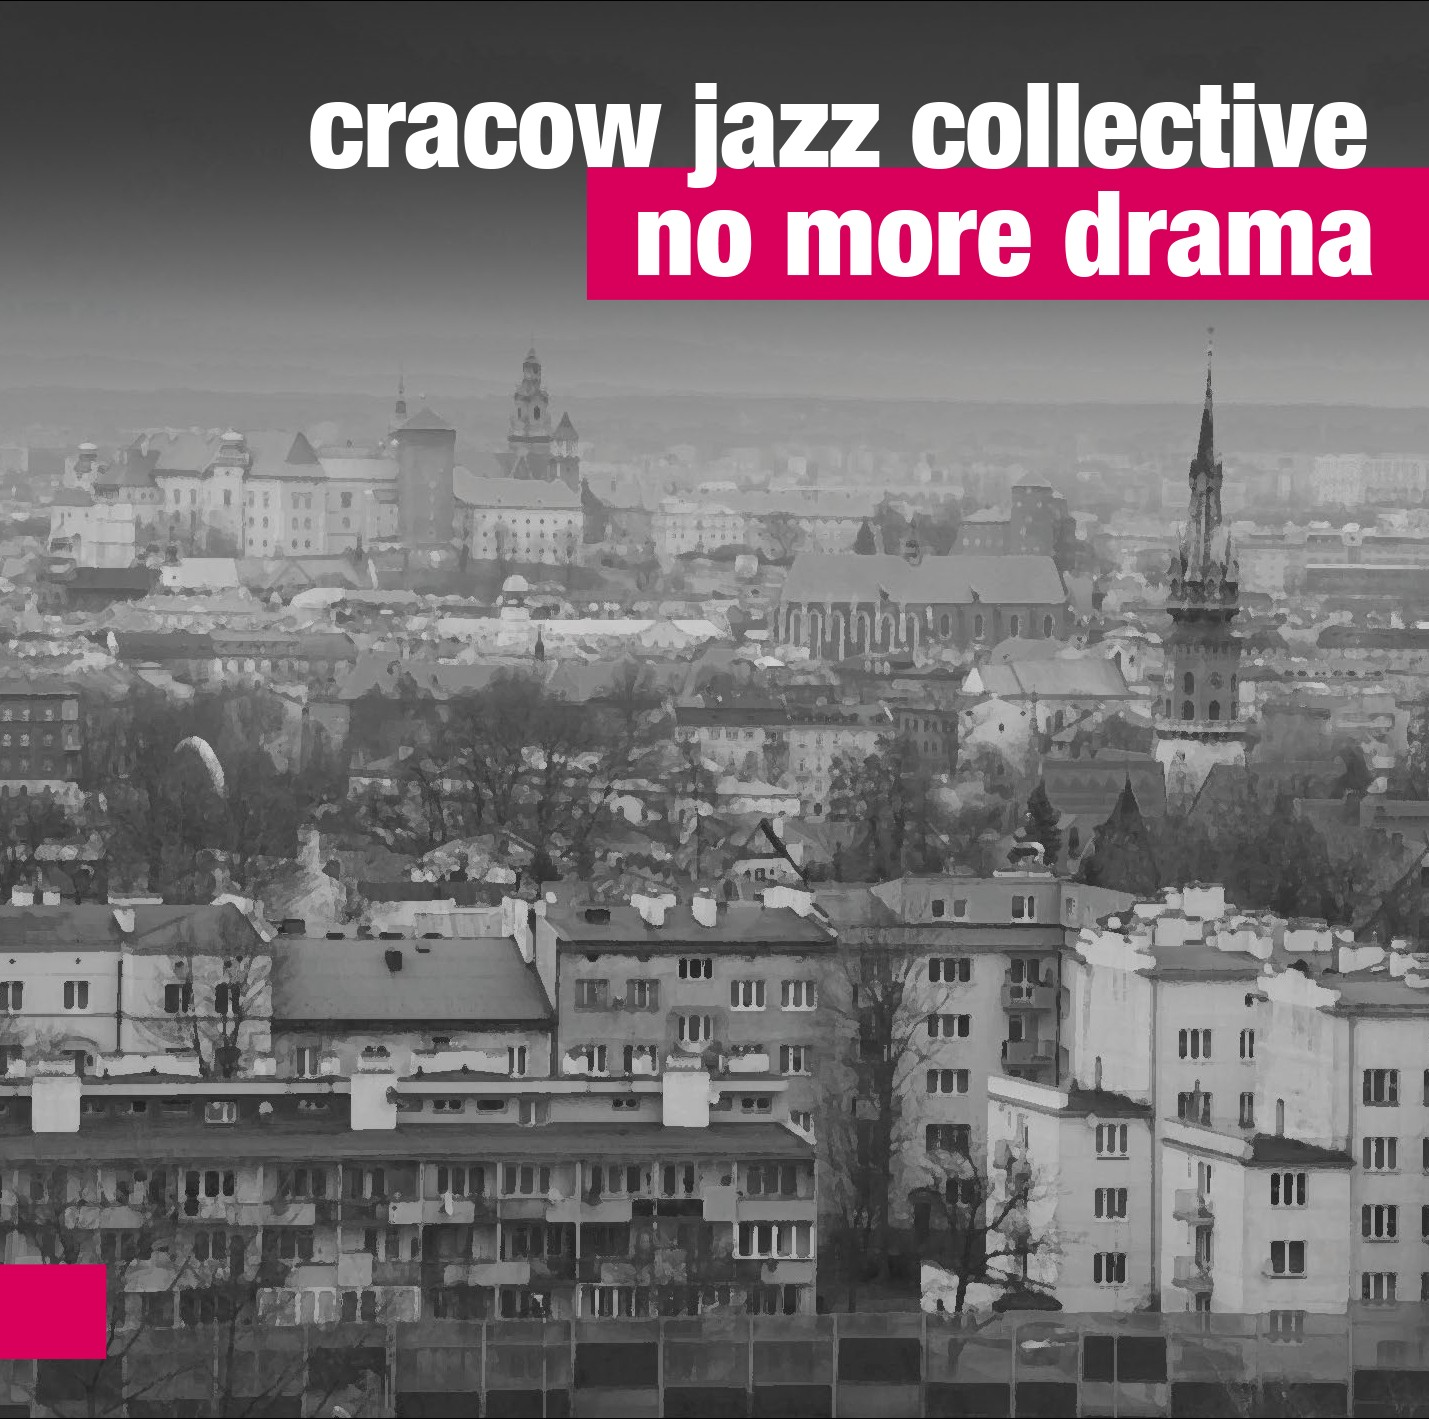 cracow jazz collective